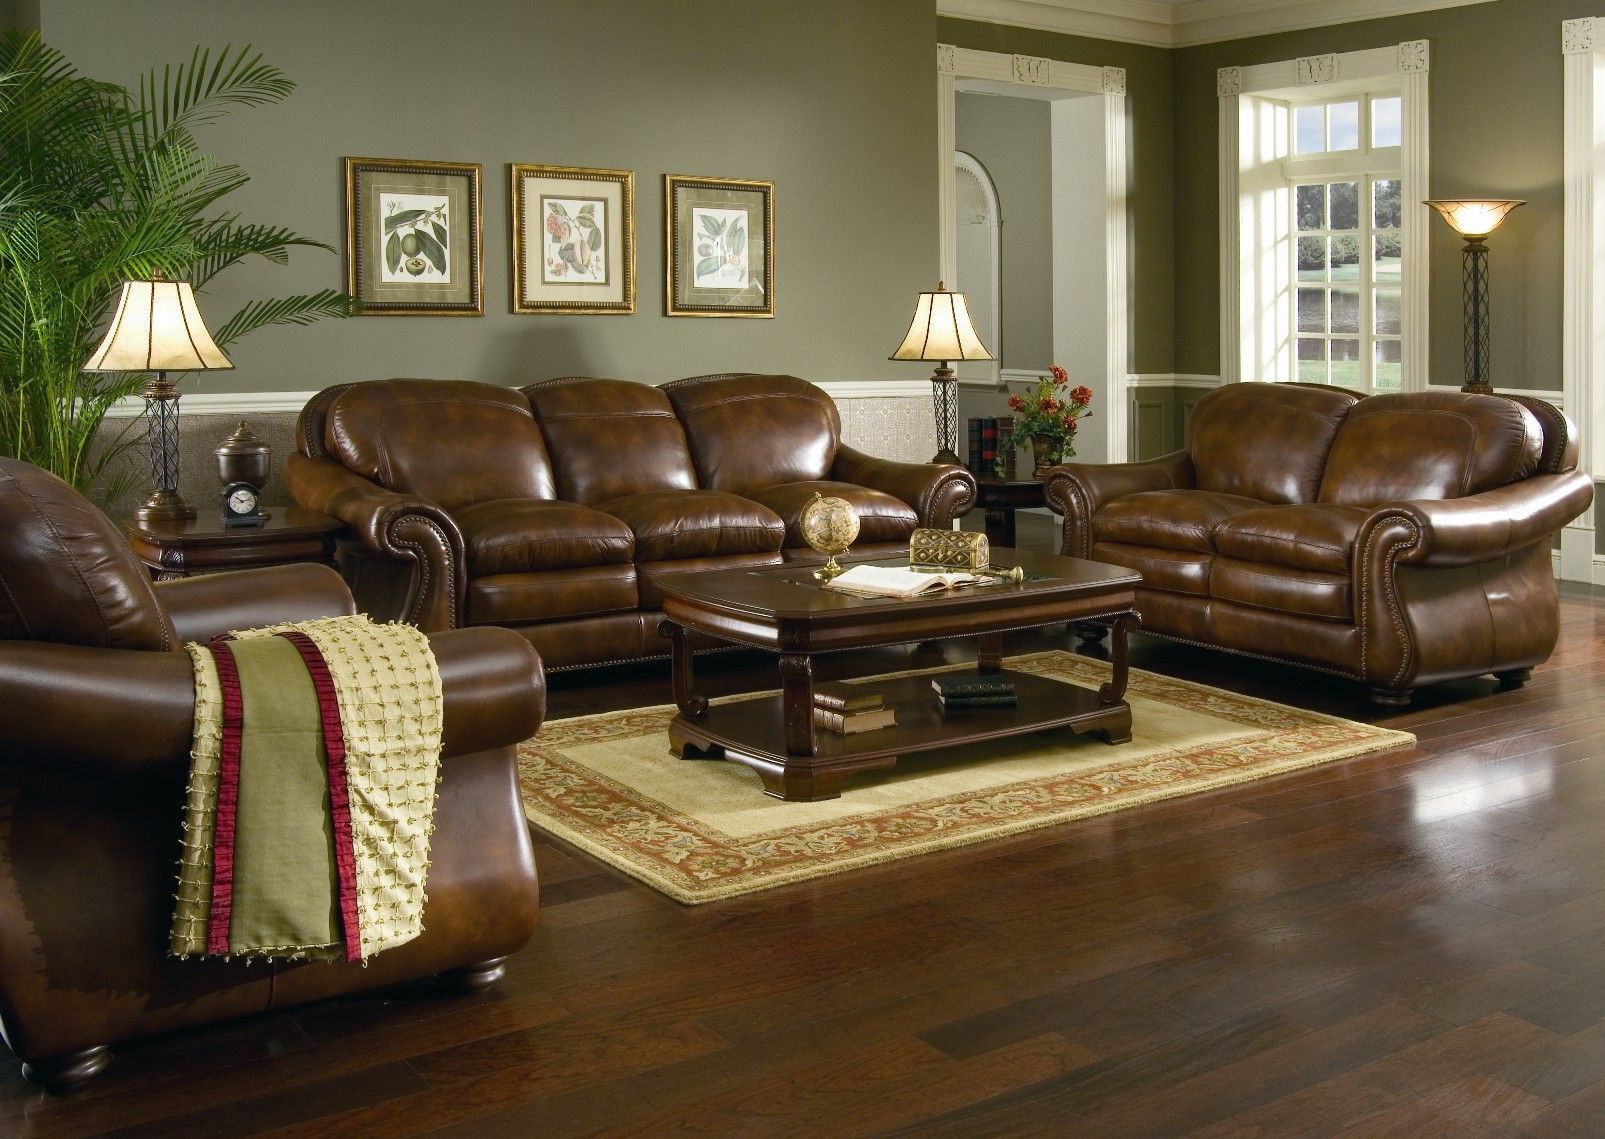 Living room leather sofa designs - Paint Ideas Living Room Brown Furniture Colors Of Living Room Leather Sofa Minimalist Home Decor Design Ideas